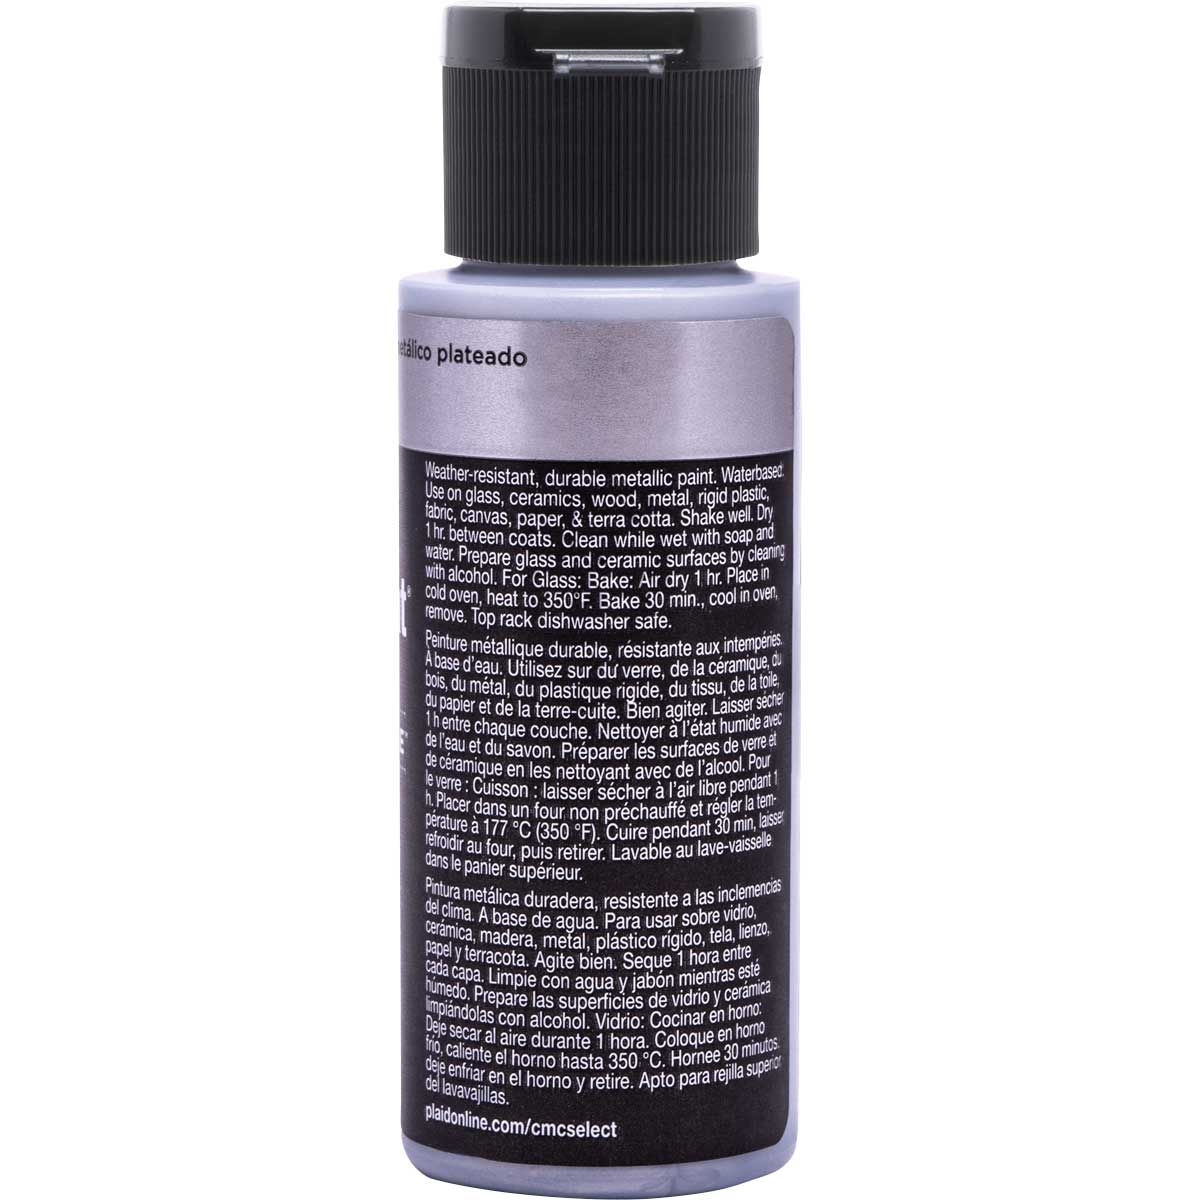 Delta Ceramcoat ® Select Multi-Surface Acrylic Paint - Metallic - Silver, 2 oz. - 04112